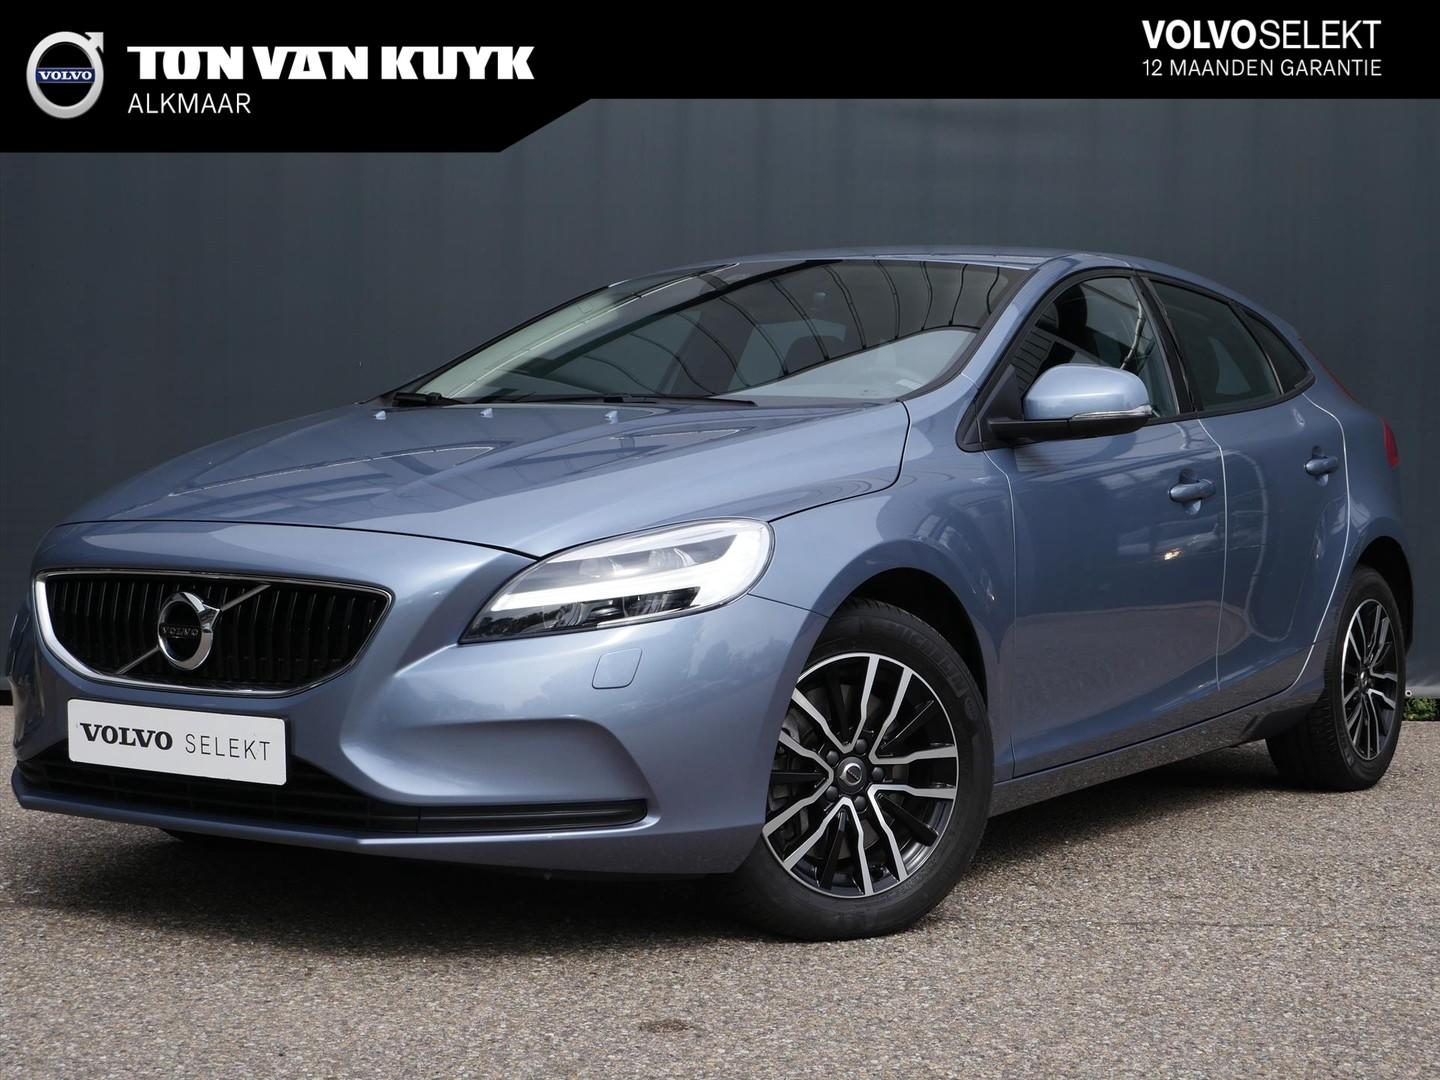 Volvo V40 T2 122pk geartronic nordic+ / led / standkachel / on call